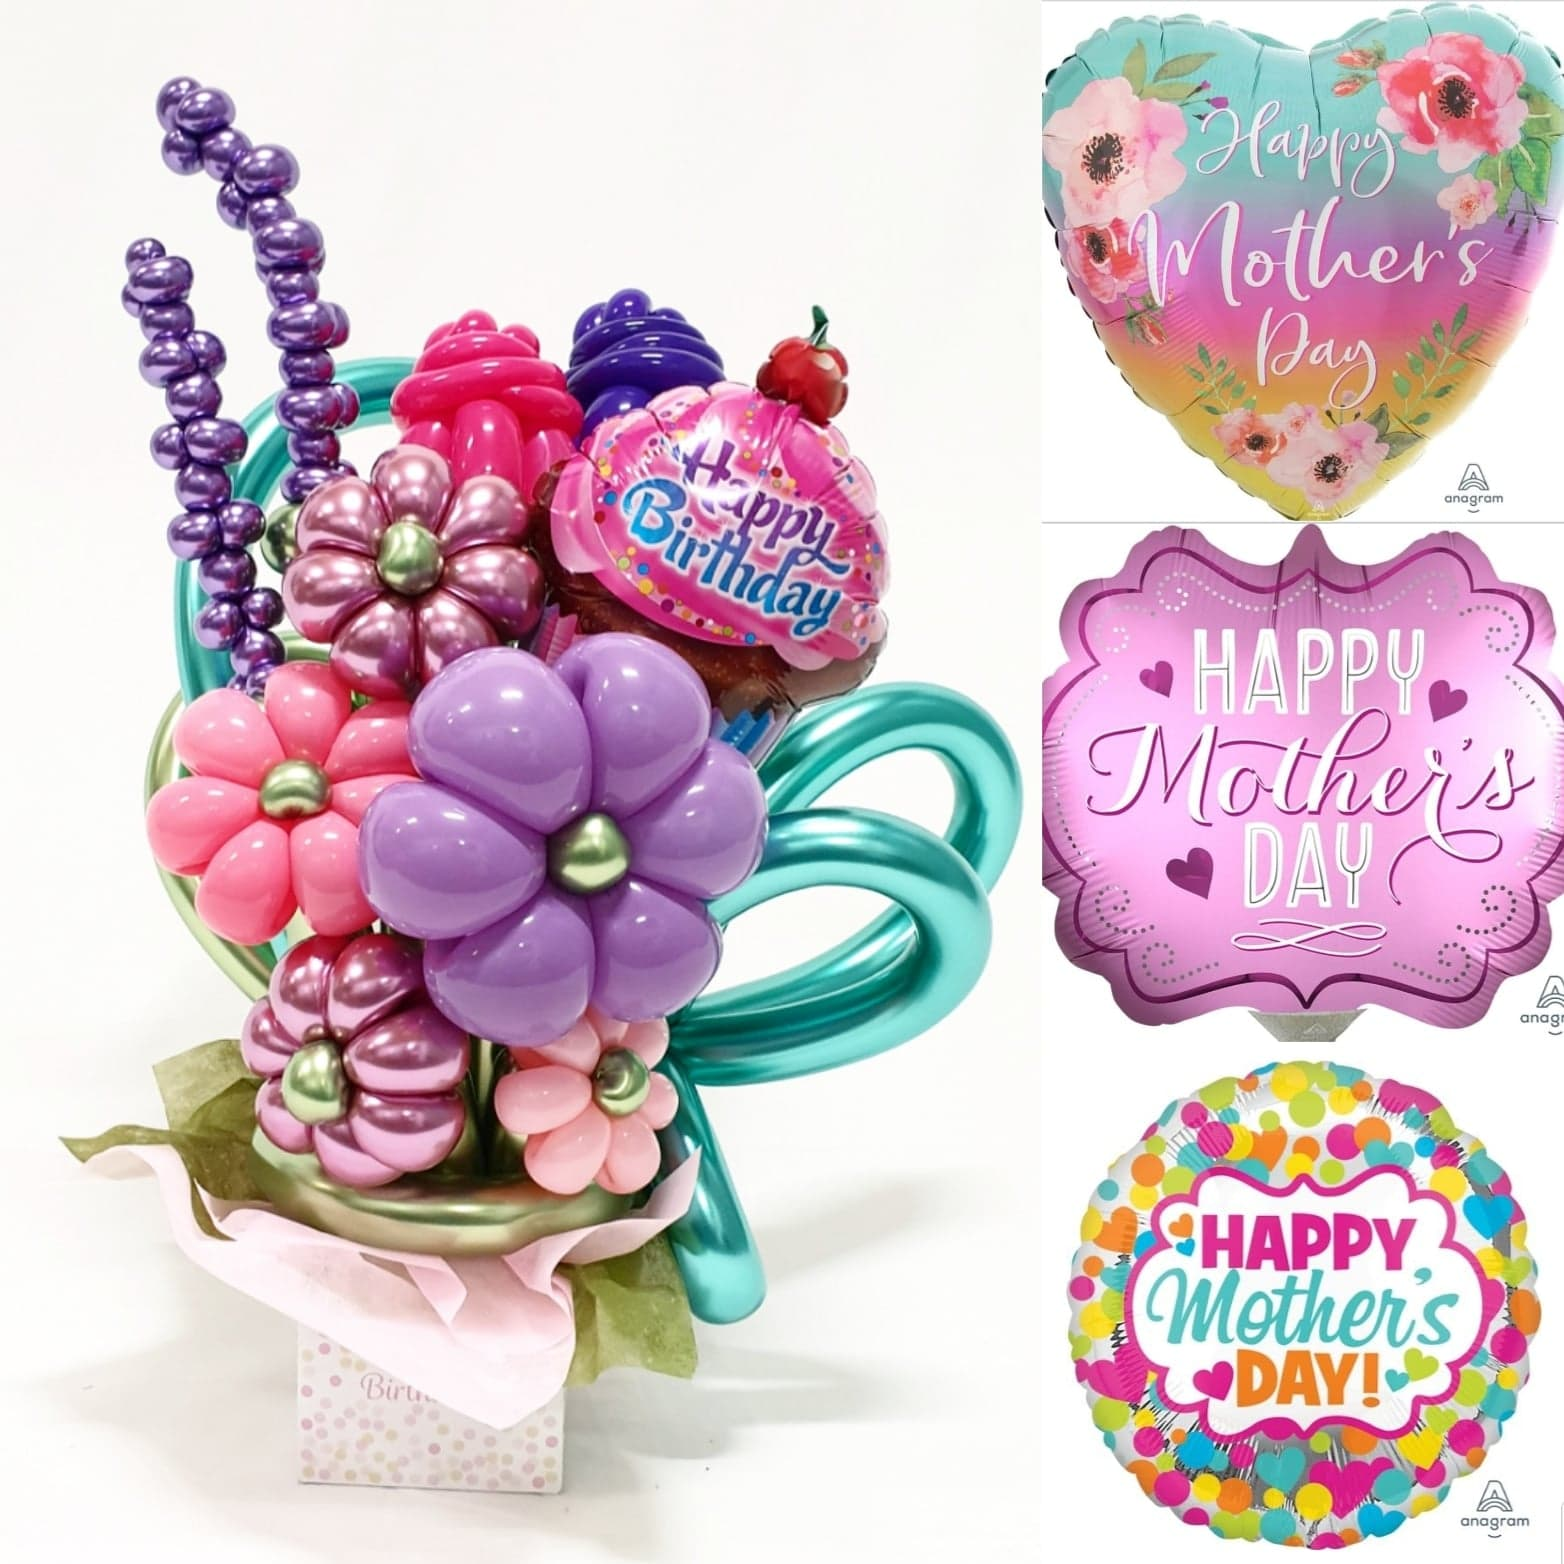 $75 - Mothers Day Flower Bouquet